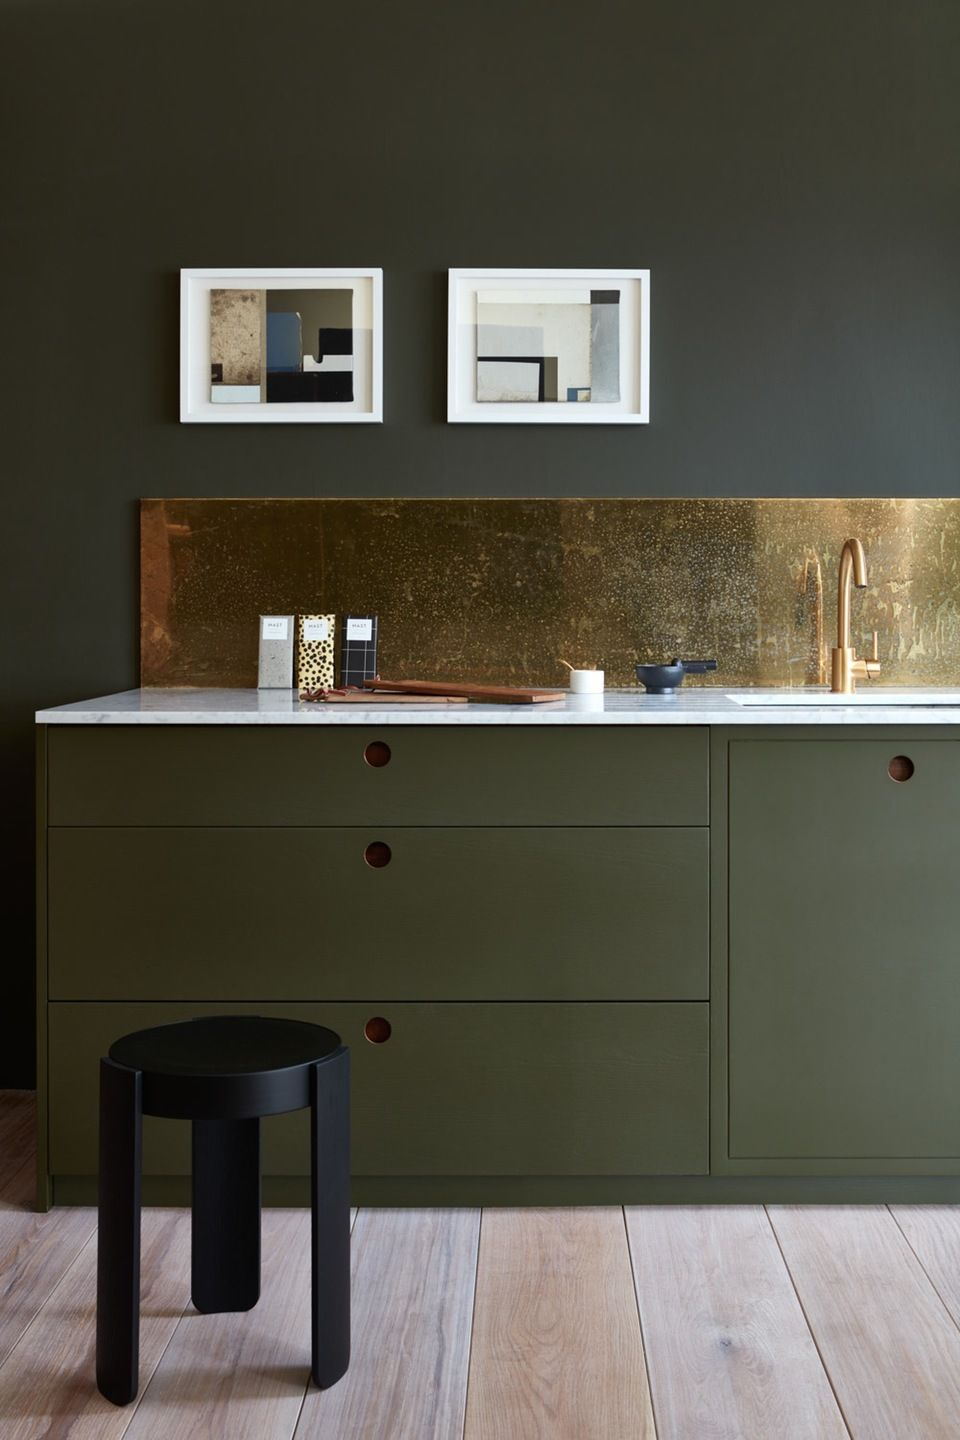 Fantastic kitchen in an dusty green color with brass details. Designed by Ladbroke Kitchen.